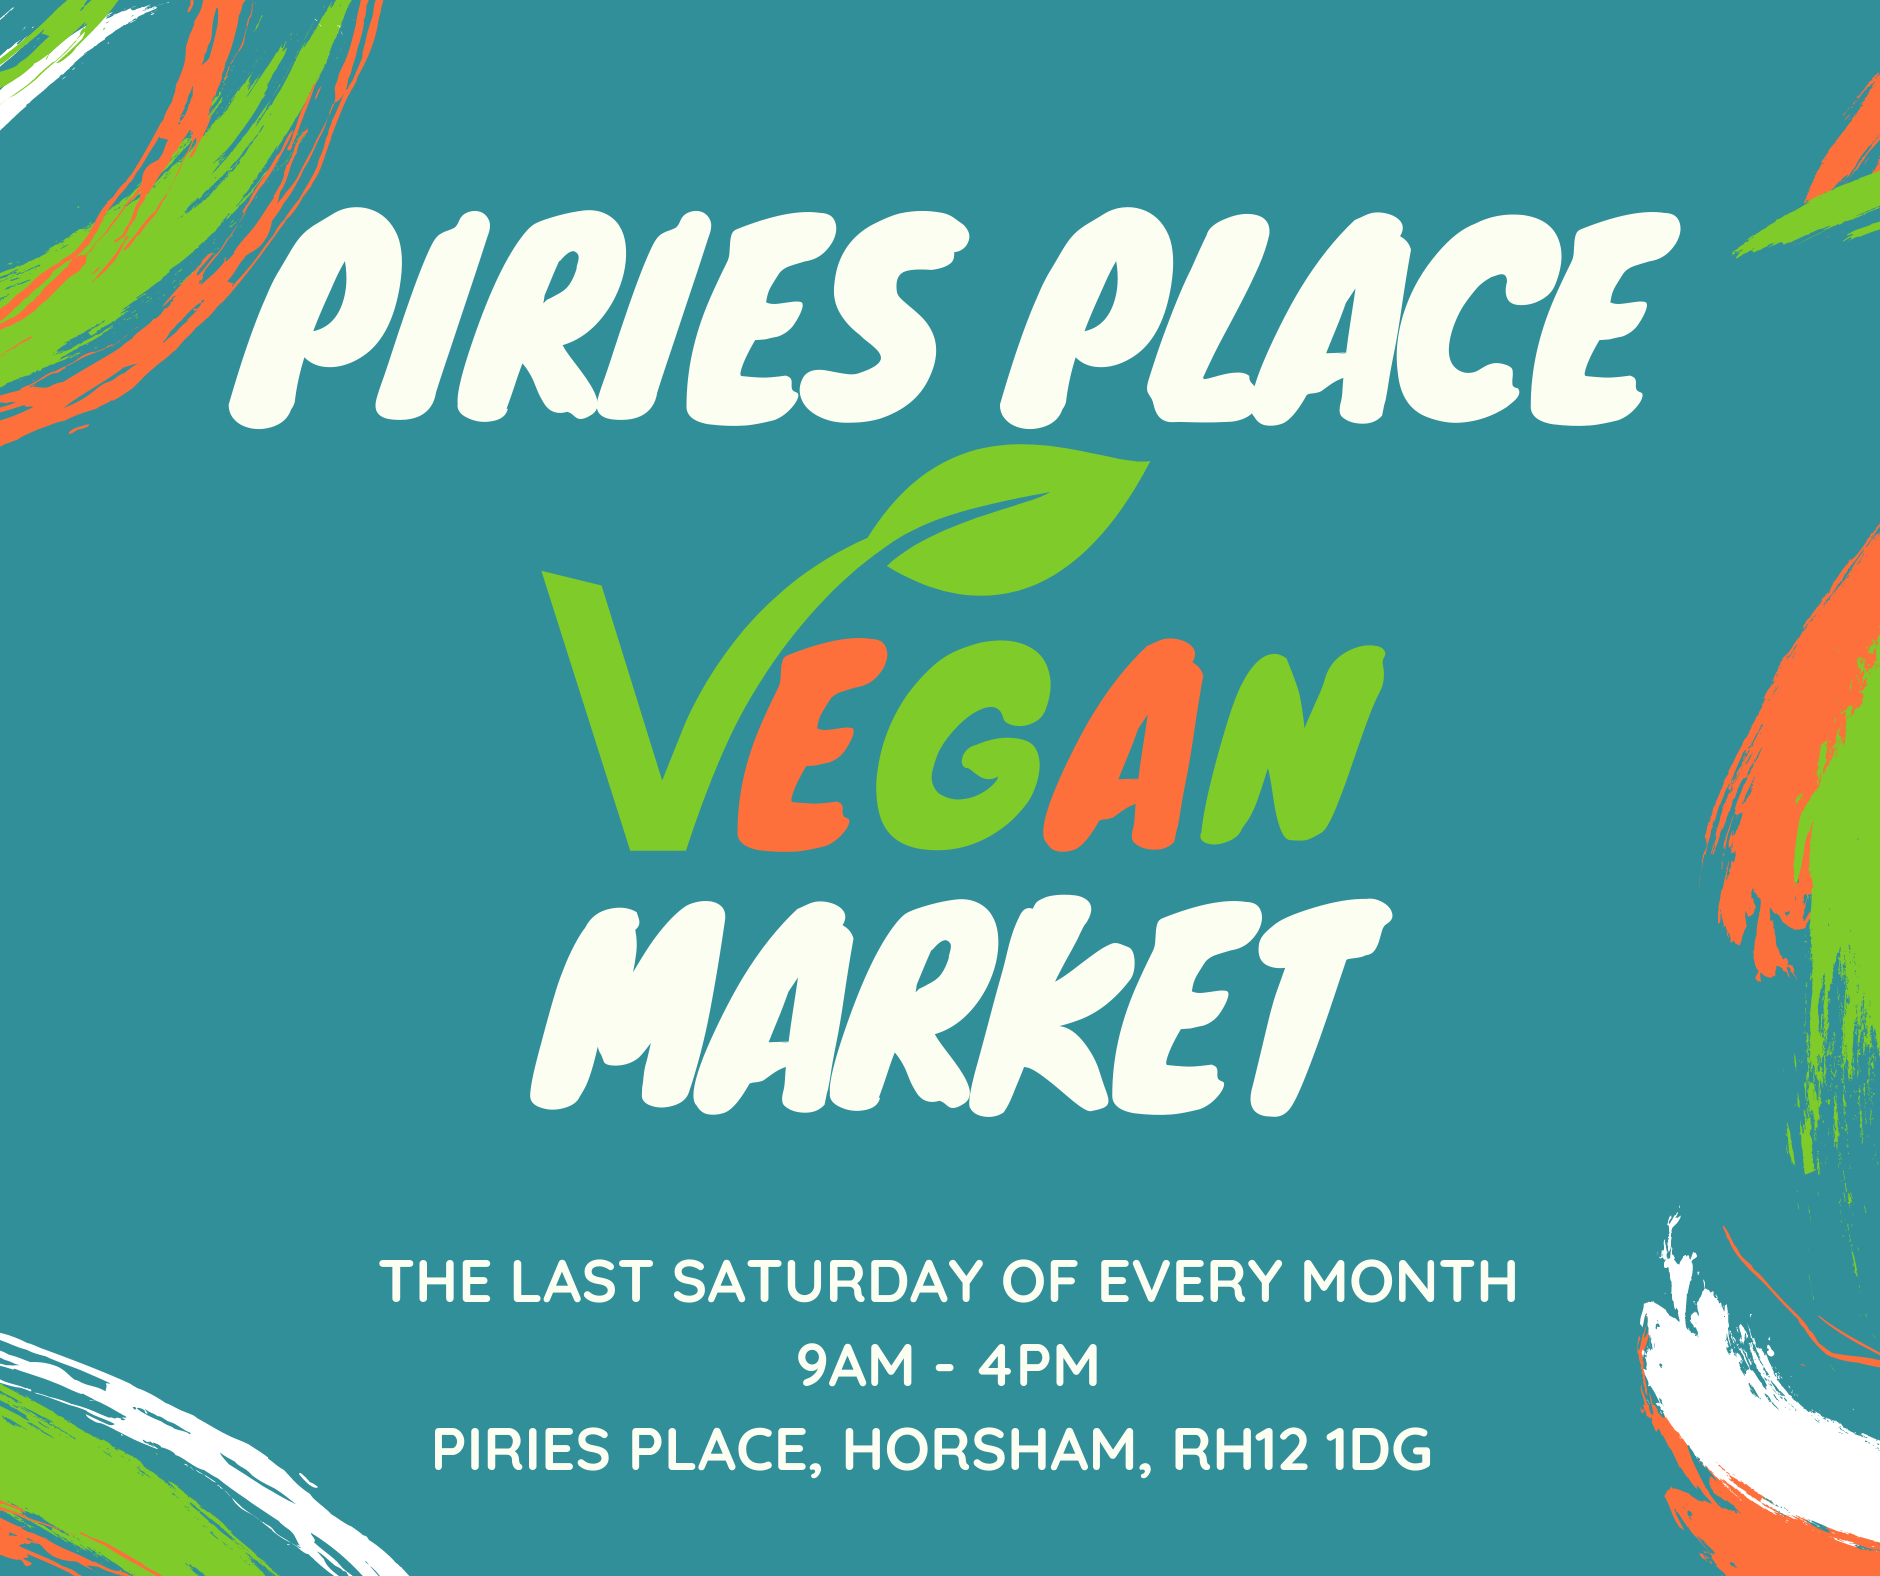 Piries Place Vegan Market